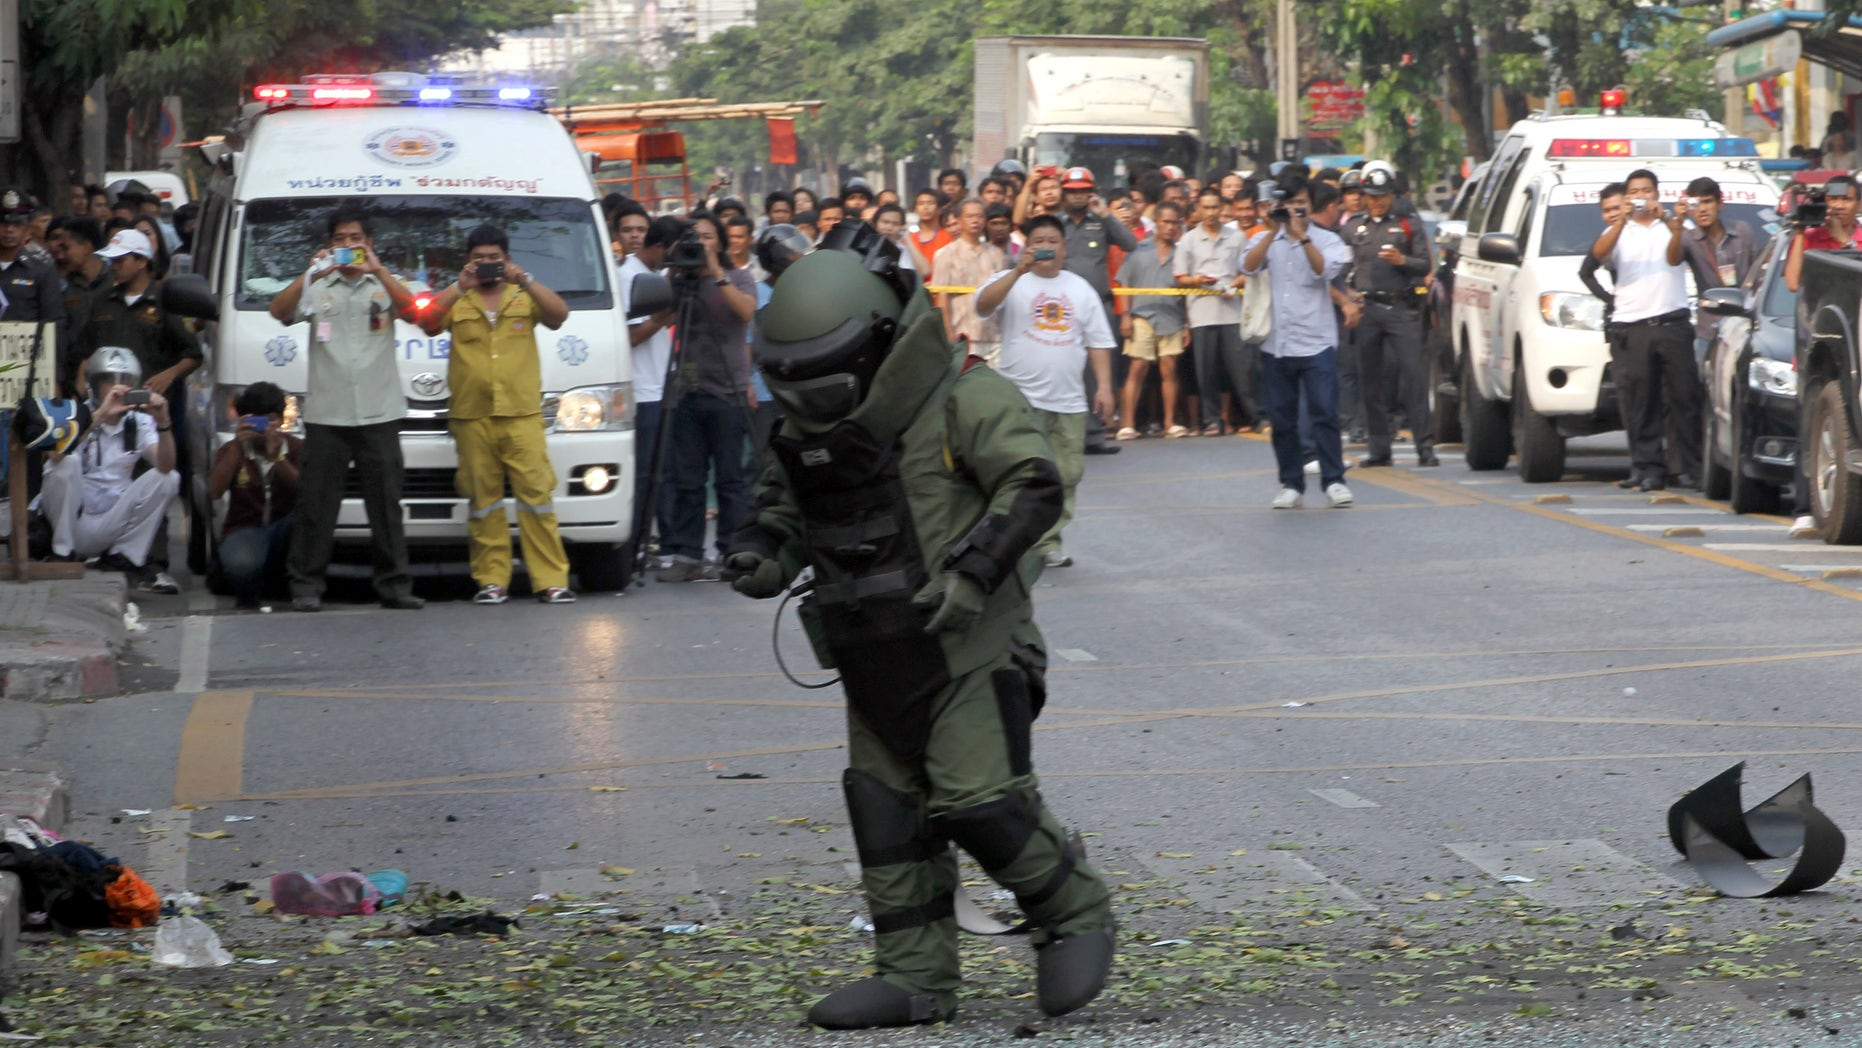 Feb. 14, 2012: A Thai Explosive Ordnance Disposal (EOD) official examines the bomb site in Bangkok, Thailand.